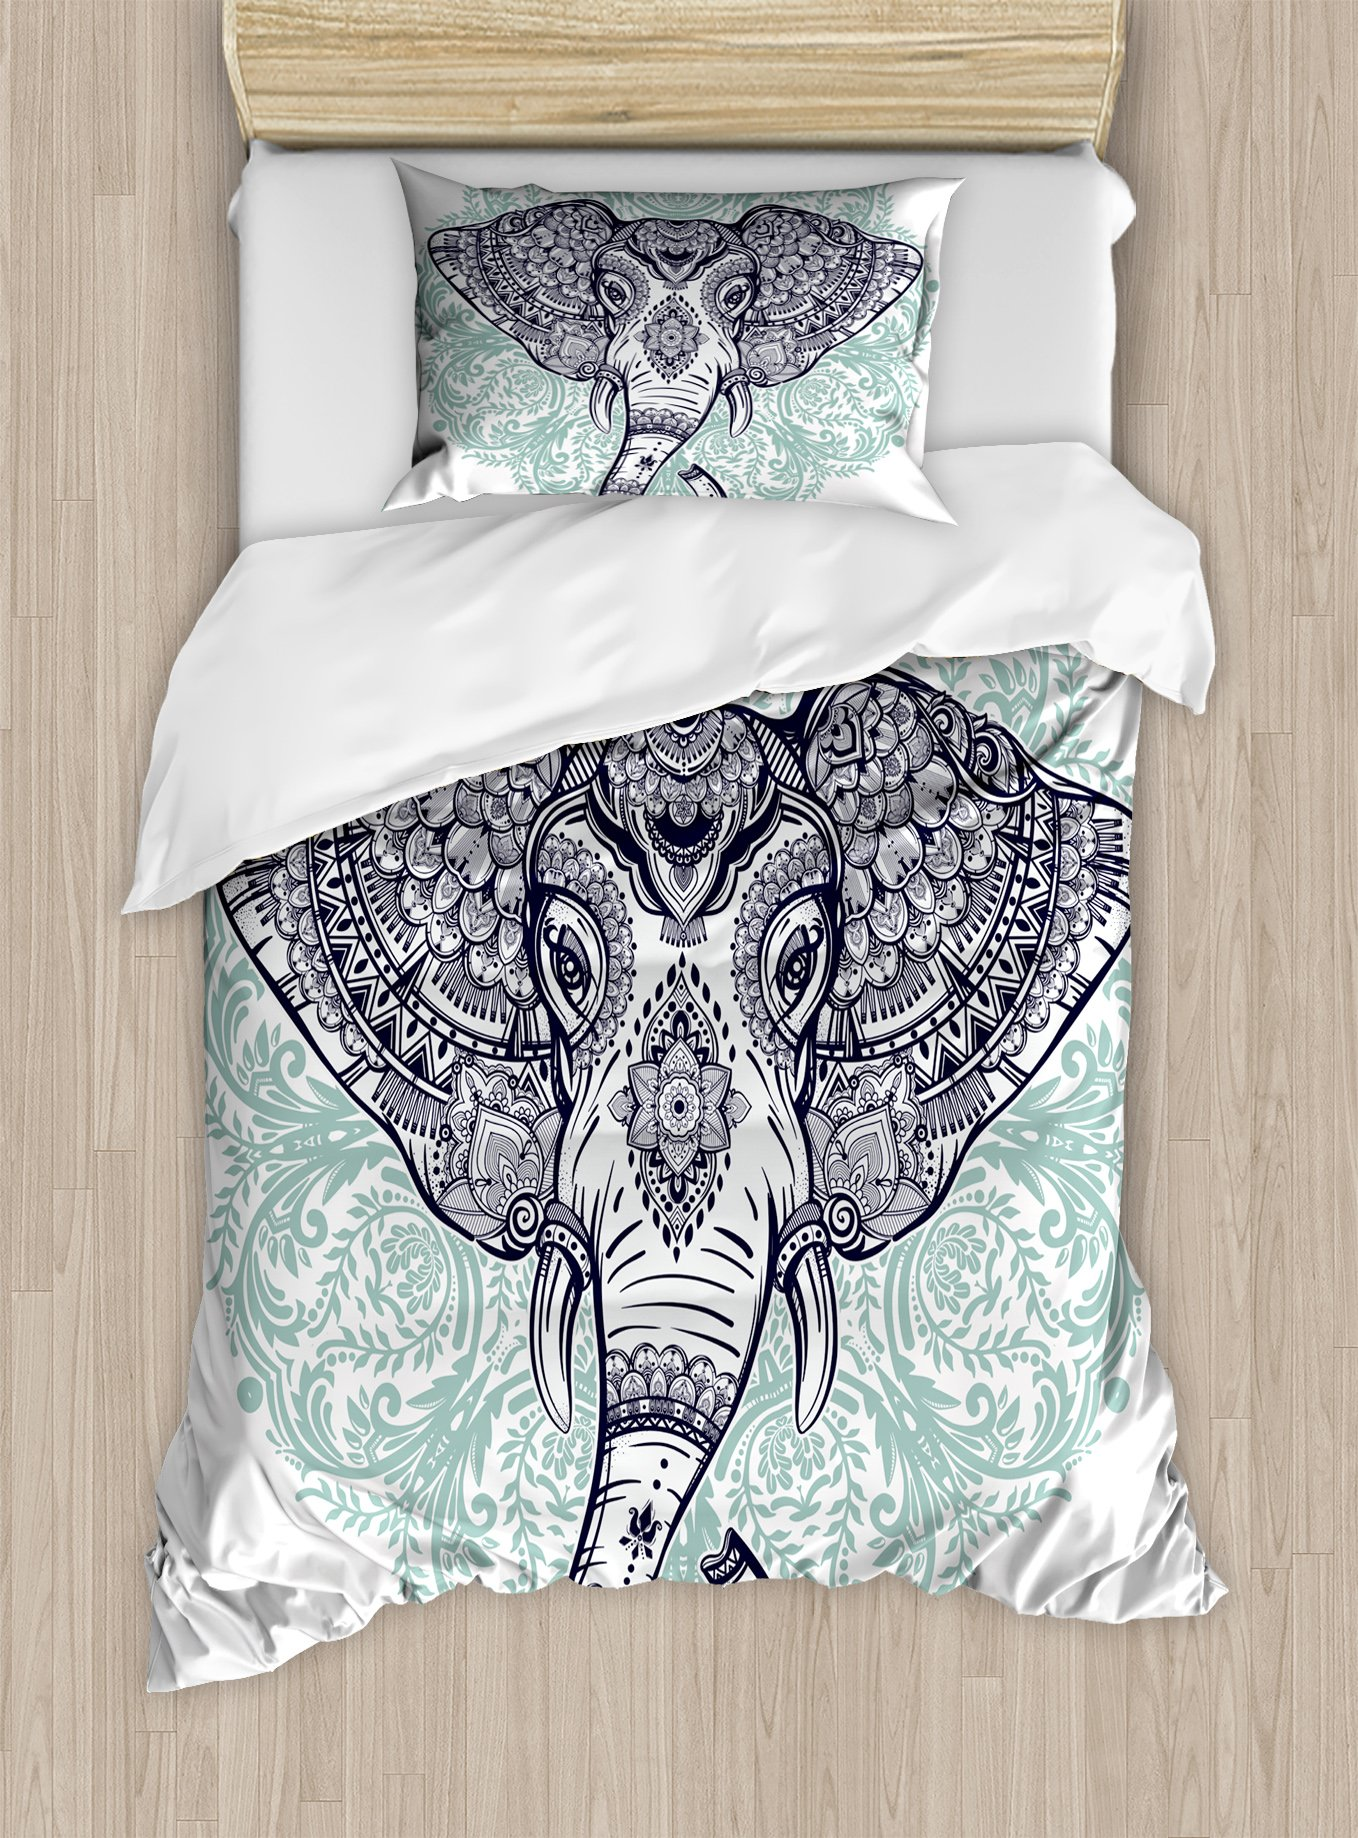 Ambesonne Elephant Mandala Duvet Cover Set Twin Size, Ethnic Tribal Floral Paisley Print Sacred Animal Head Hippie, Decorative 2 Piece Bedding Set with 1 Pillow Sham, Purple White and Blue